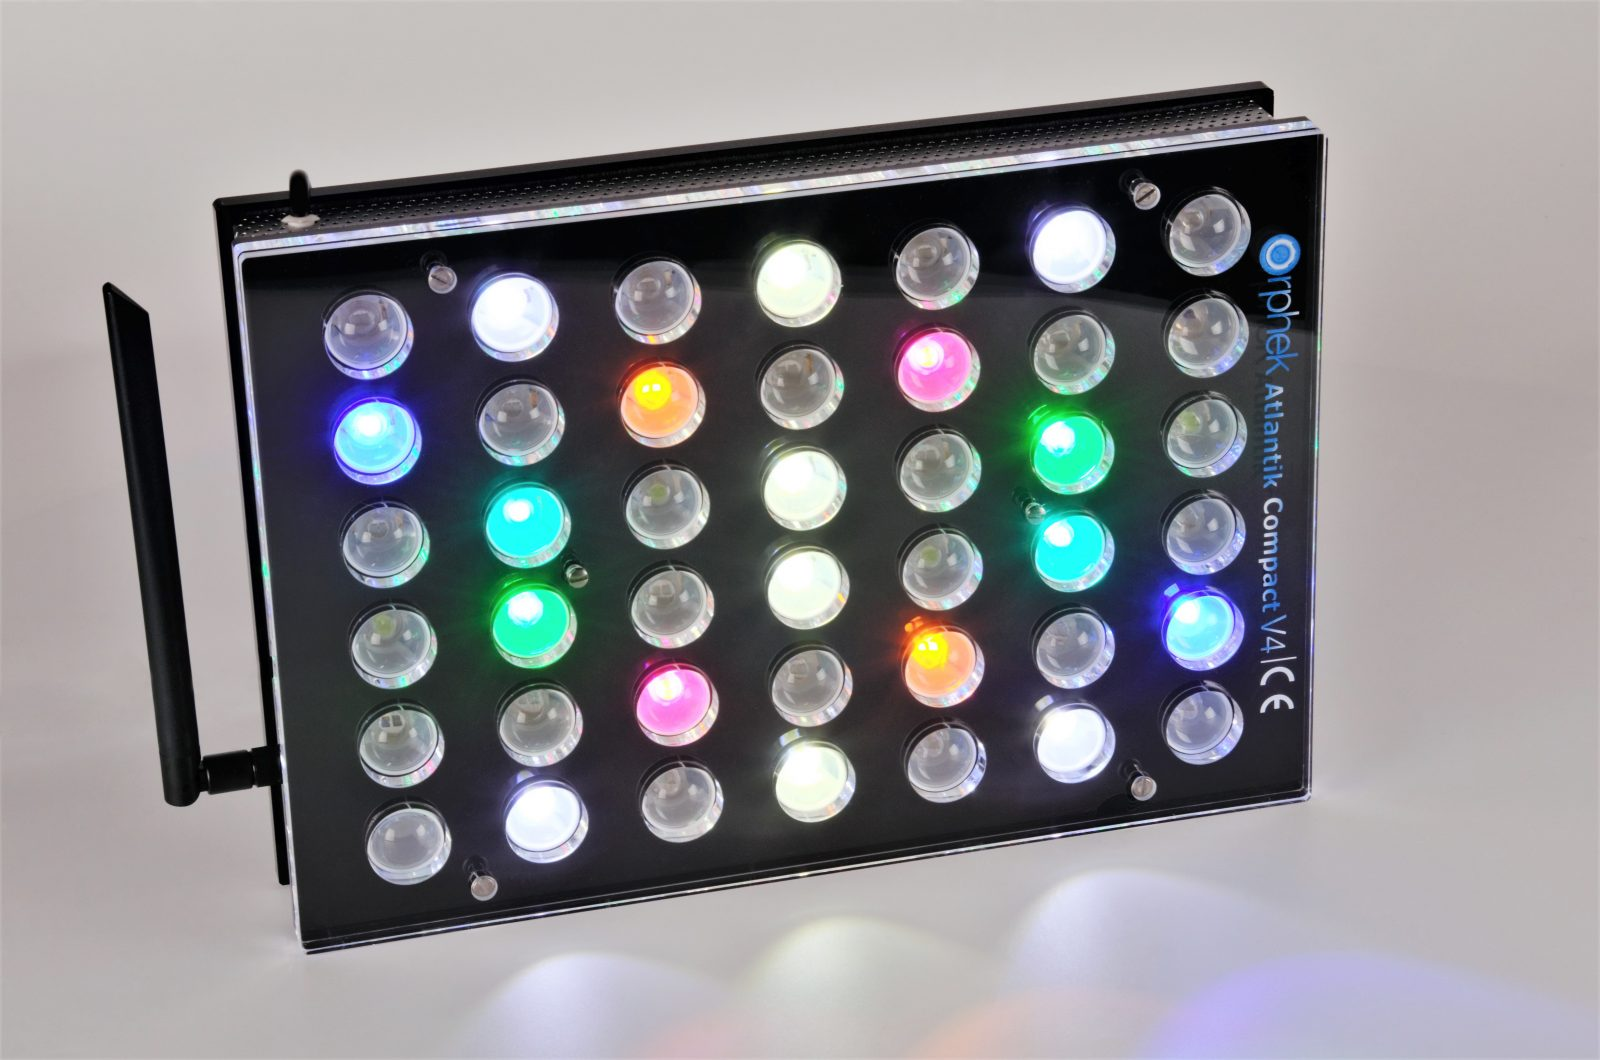 Orphek-Aquarium-LED-Beleuchtung-Atlantik -Compact-V4-light -on -channel 1 + 4